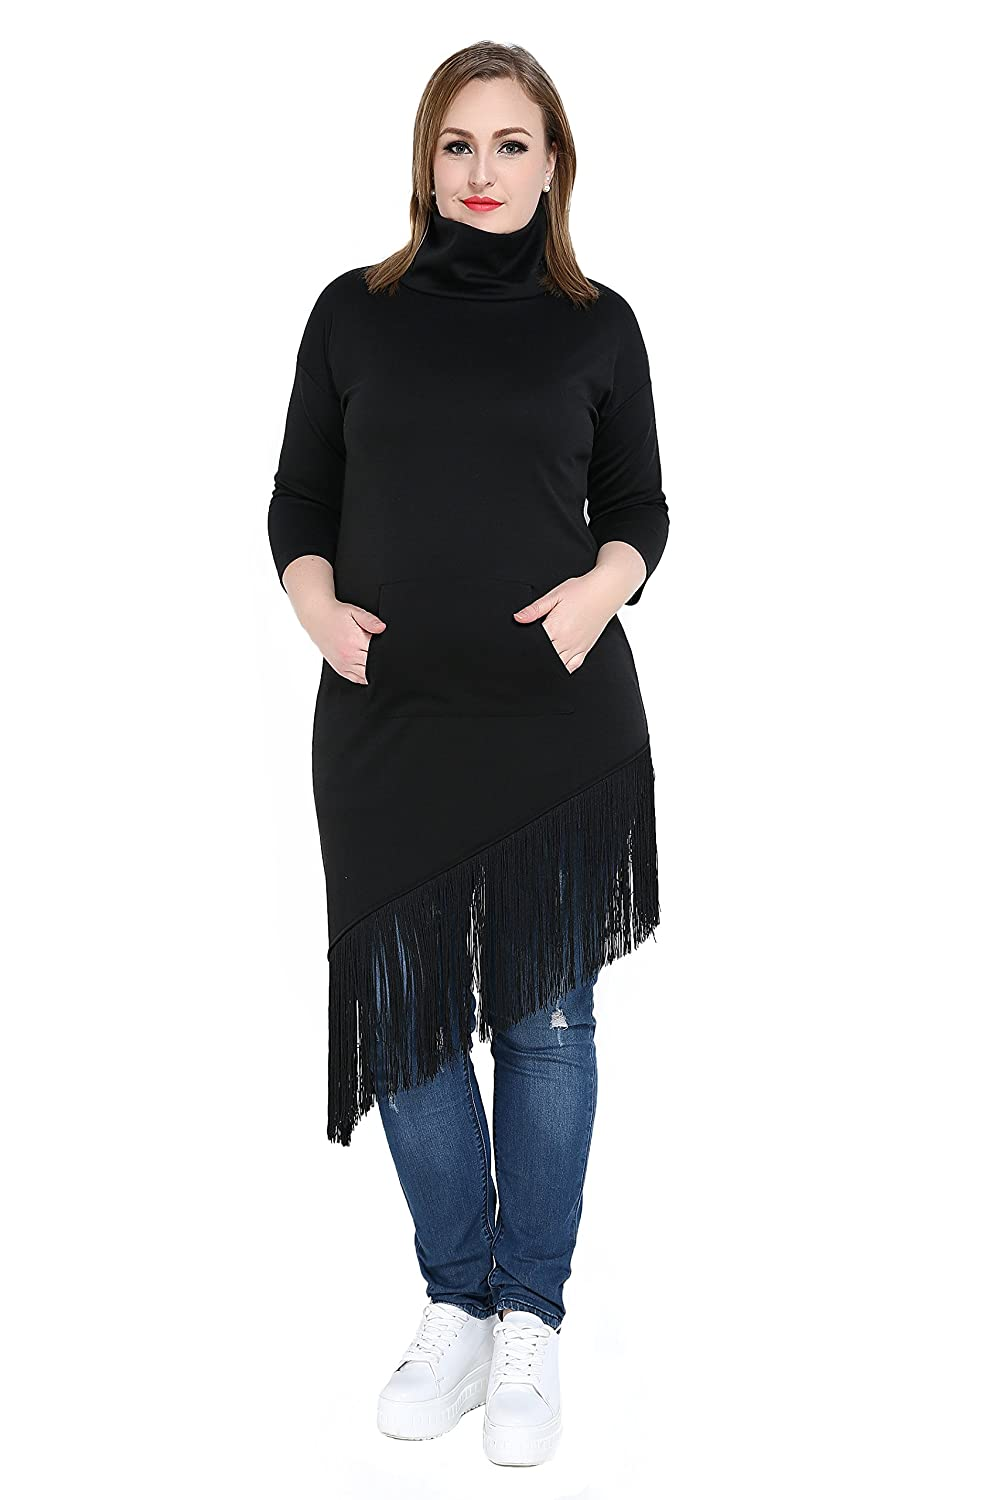 Really Love Women's Quarters Sleeve Asymmetrical Plus Size Long Oblique Casual Sweaters With Tassel